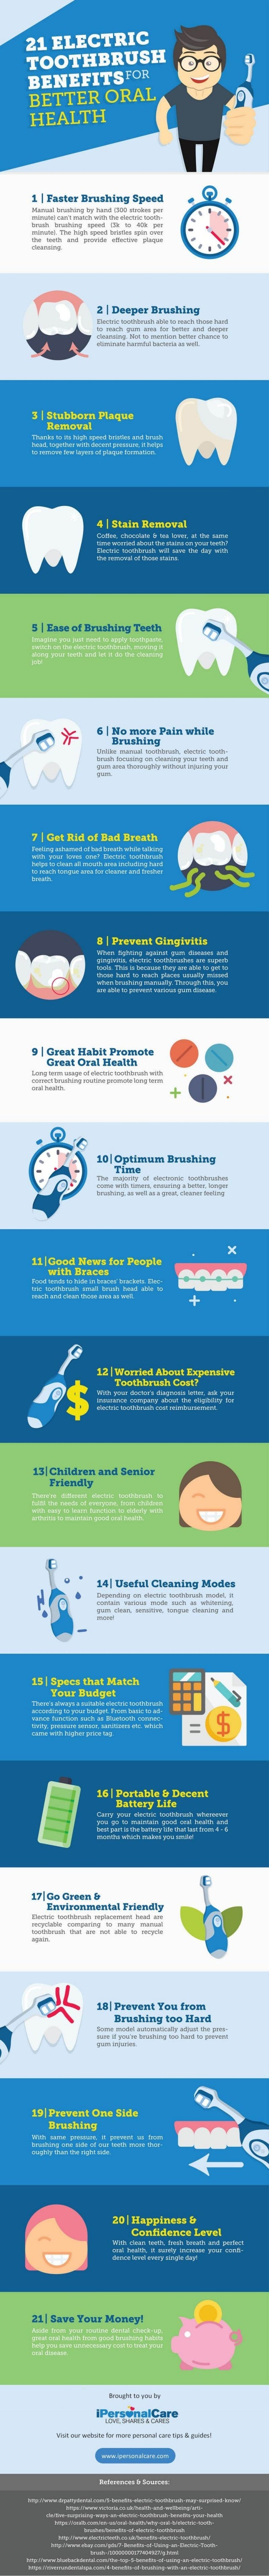 21 Electric Toothbrush Benefits for Overall Oral Health Improvement